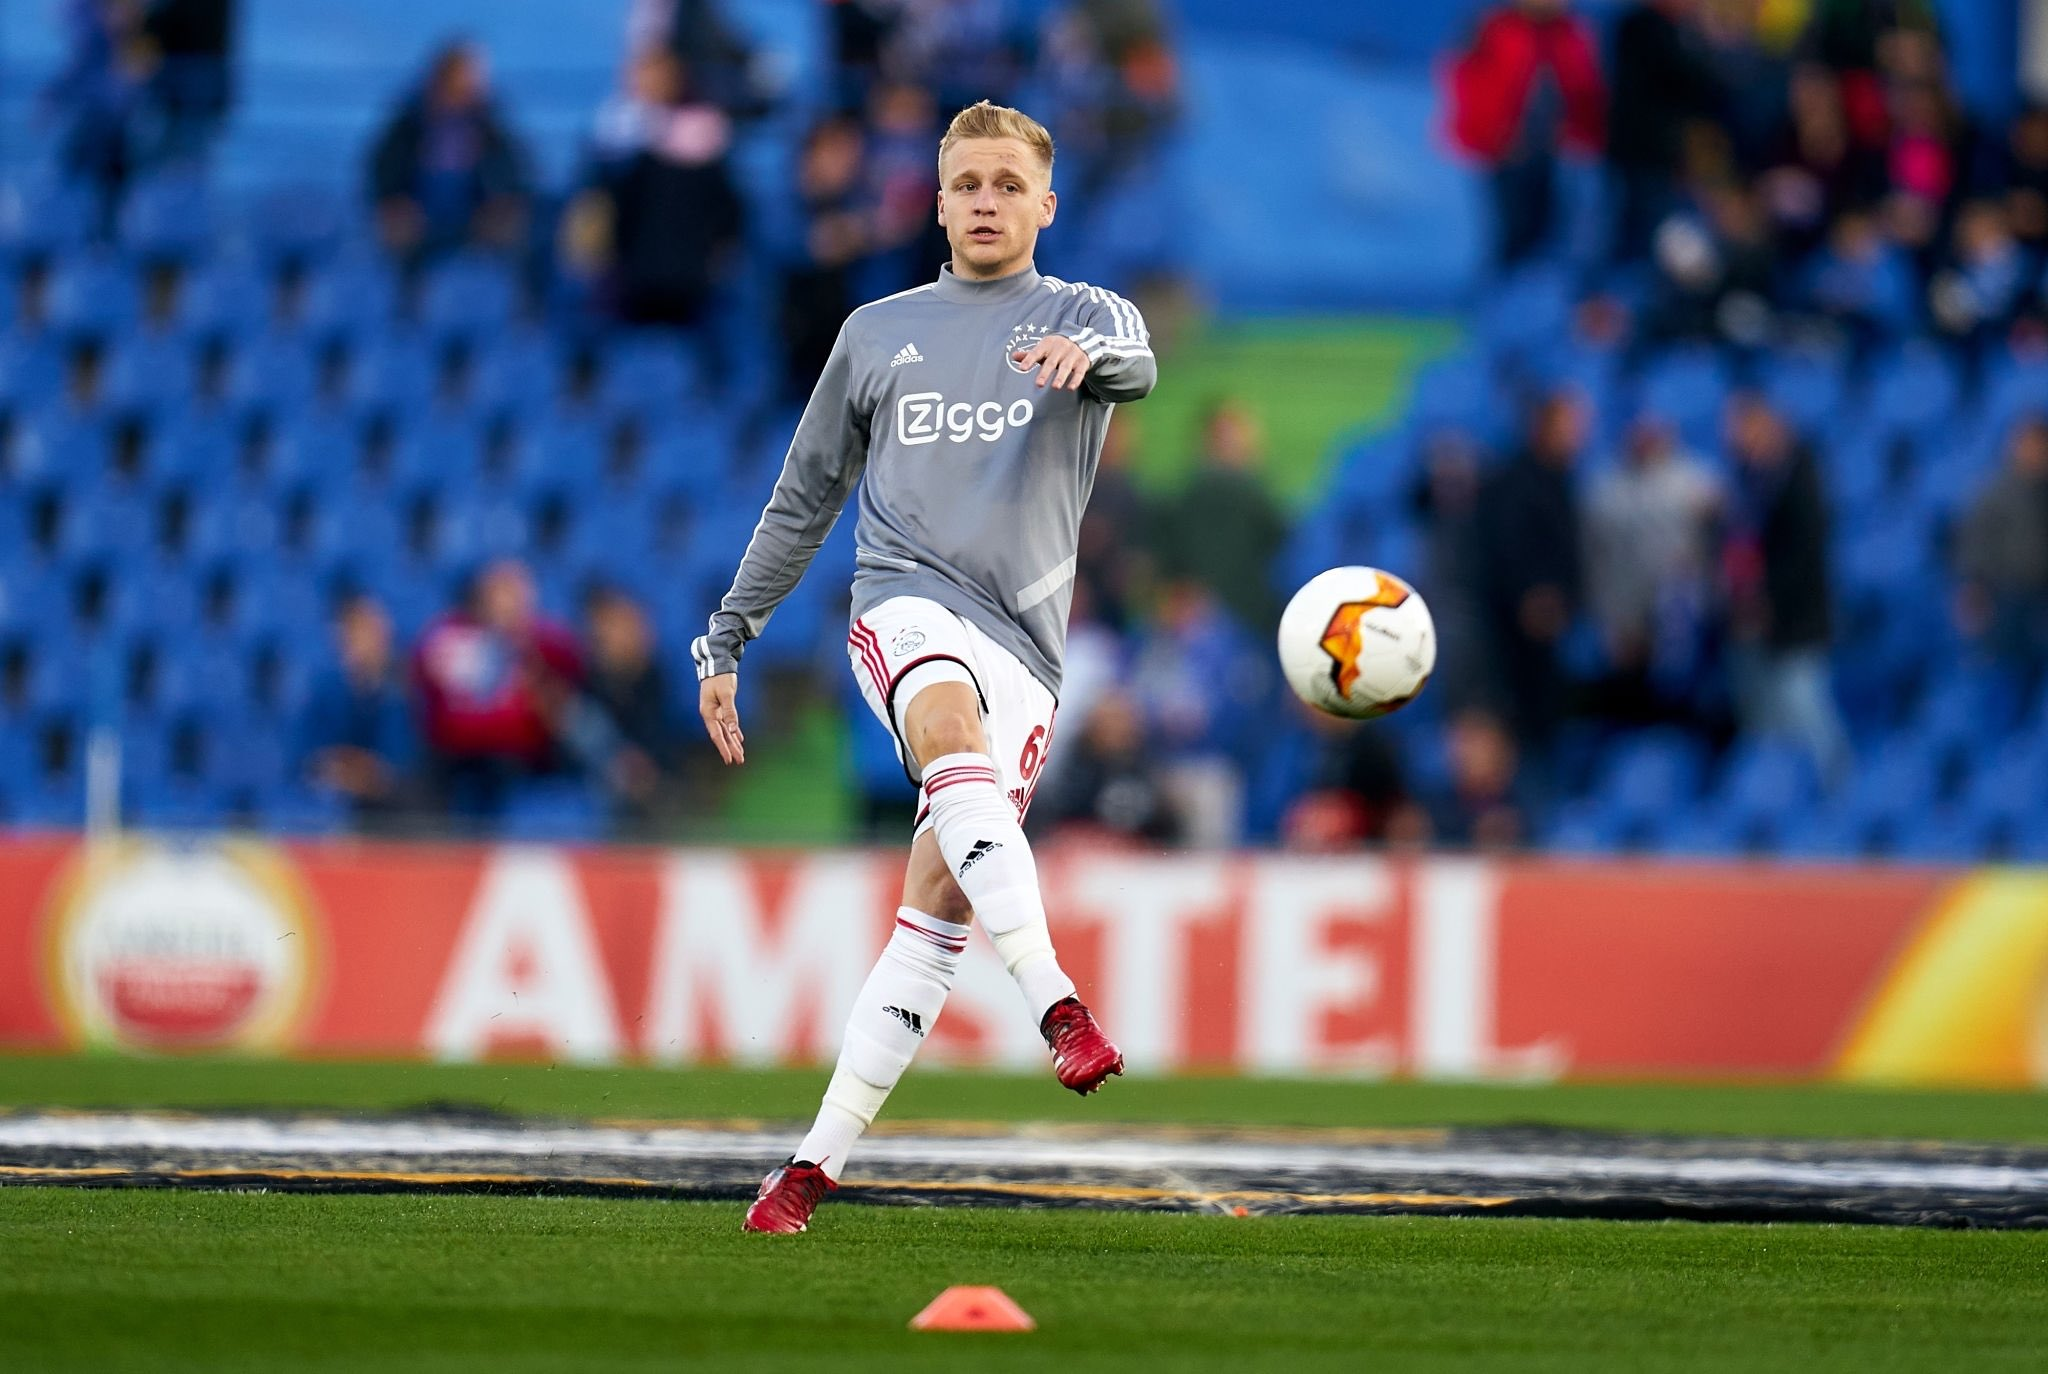 Man Utd agree £40m fee to sign Van de Beek with player to sign five-year deal